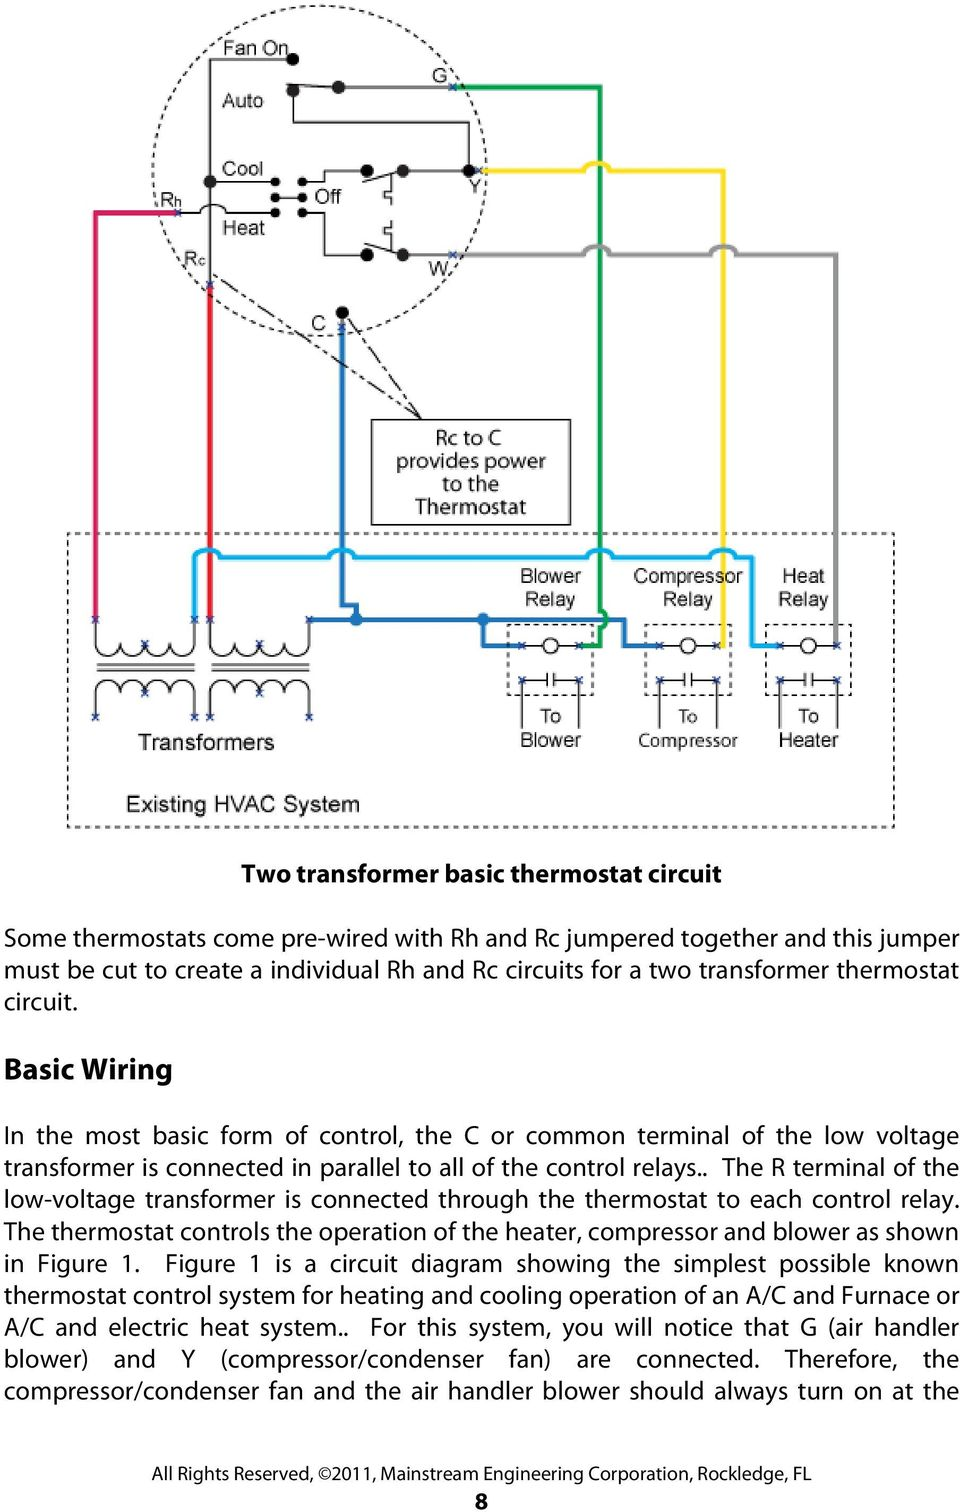 Thermostatic Wiring Principles By Bob Scaringe Phd Pe Pdf A Thermostat Transformer The R Terminal Of Low Voltage Is Connected Through To